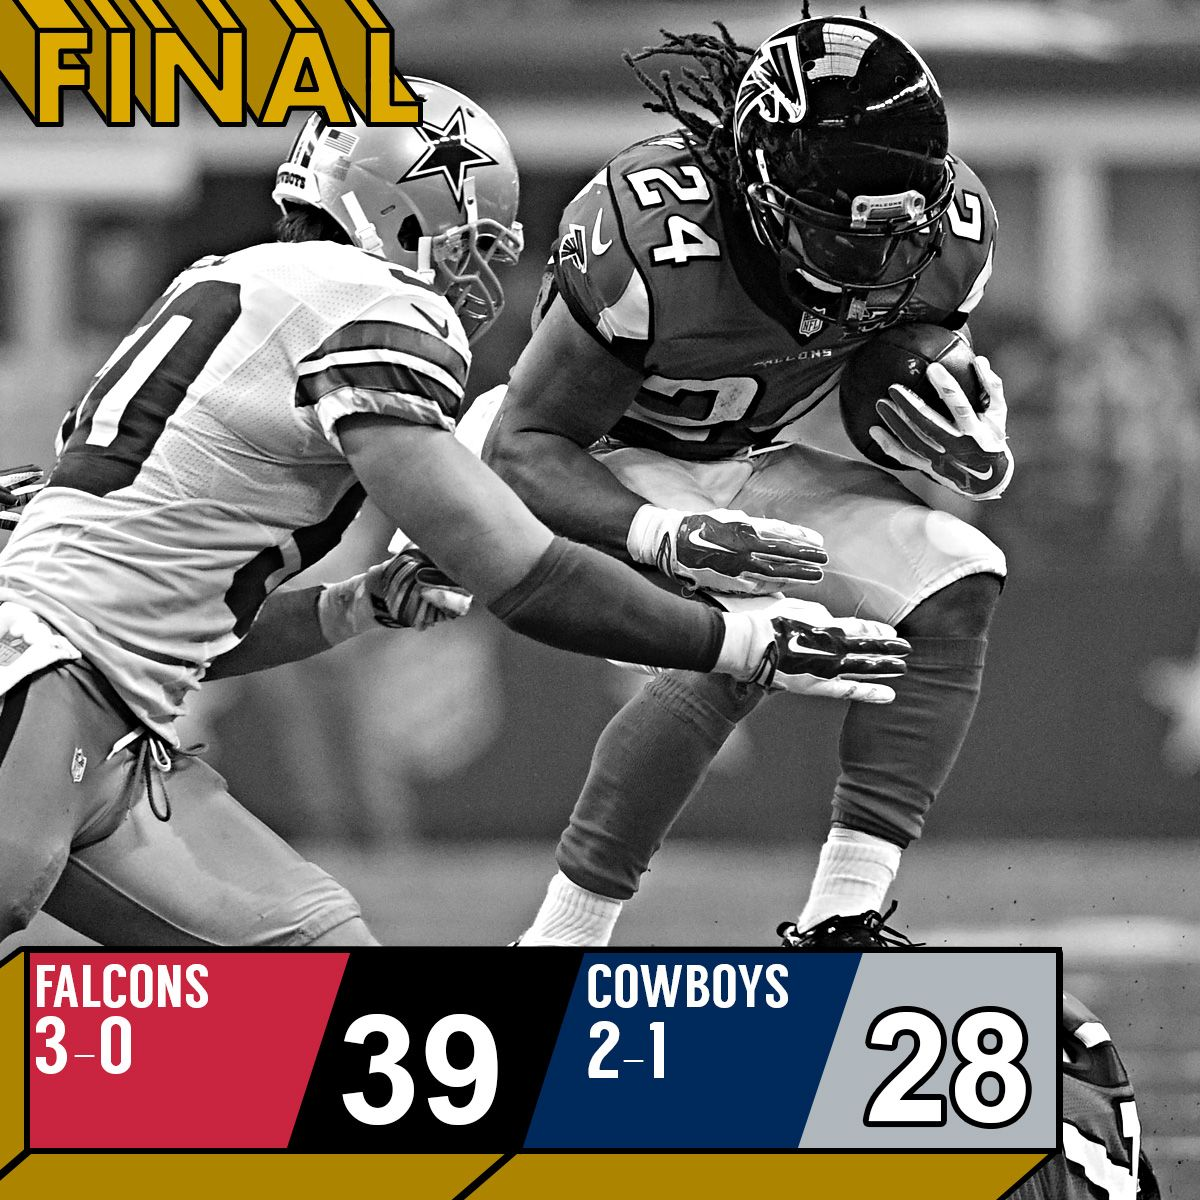 A highscoring game in Texas during Week 3 meant that the